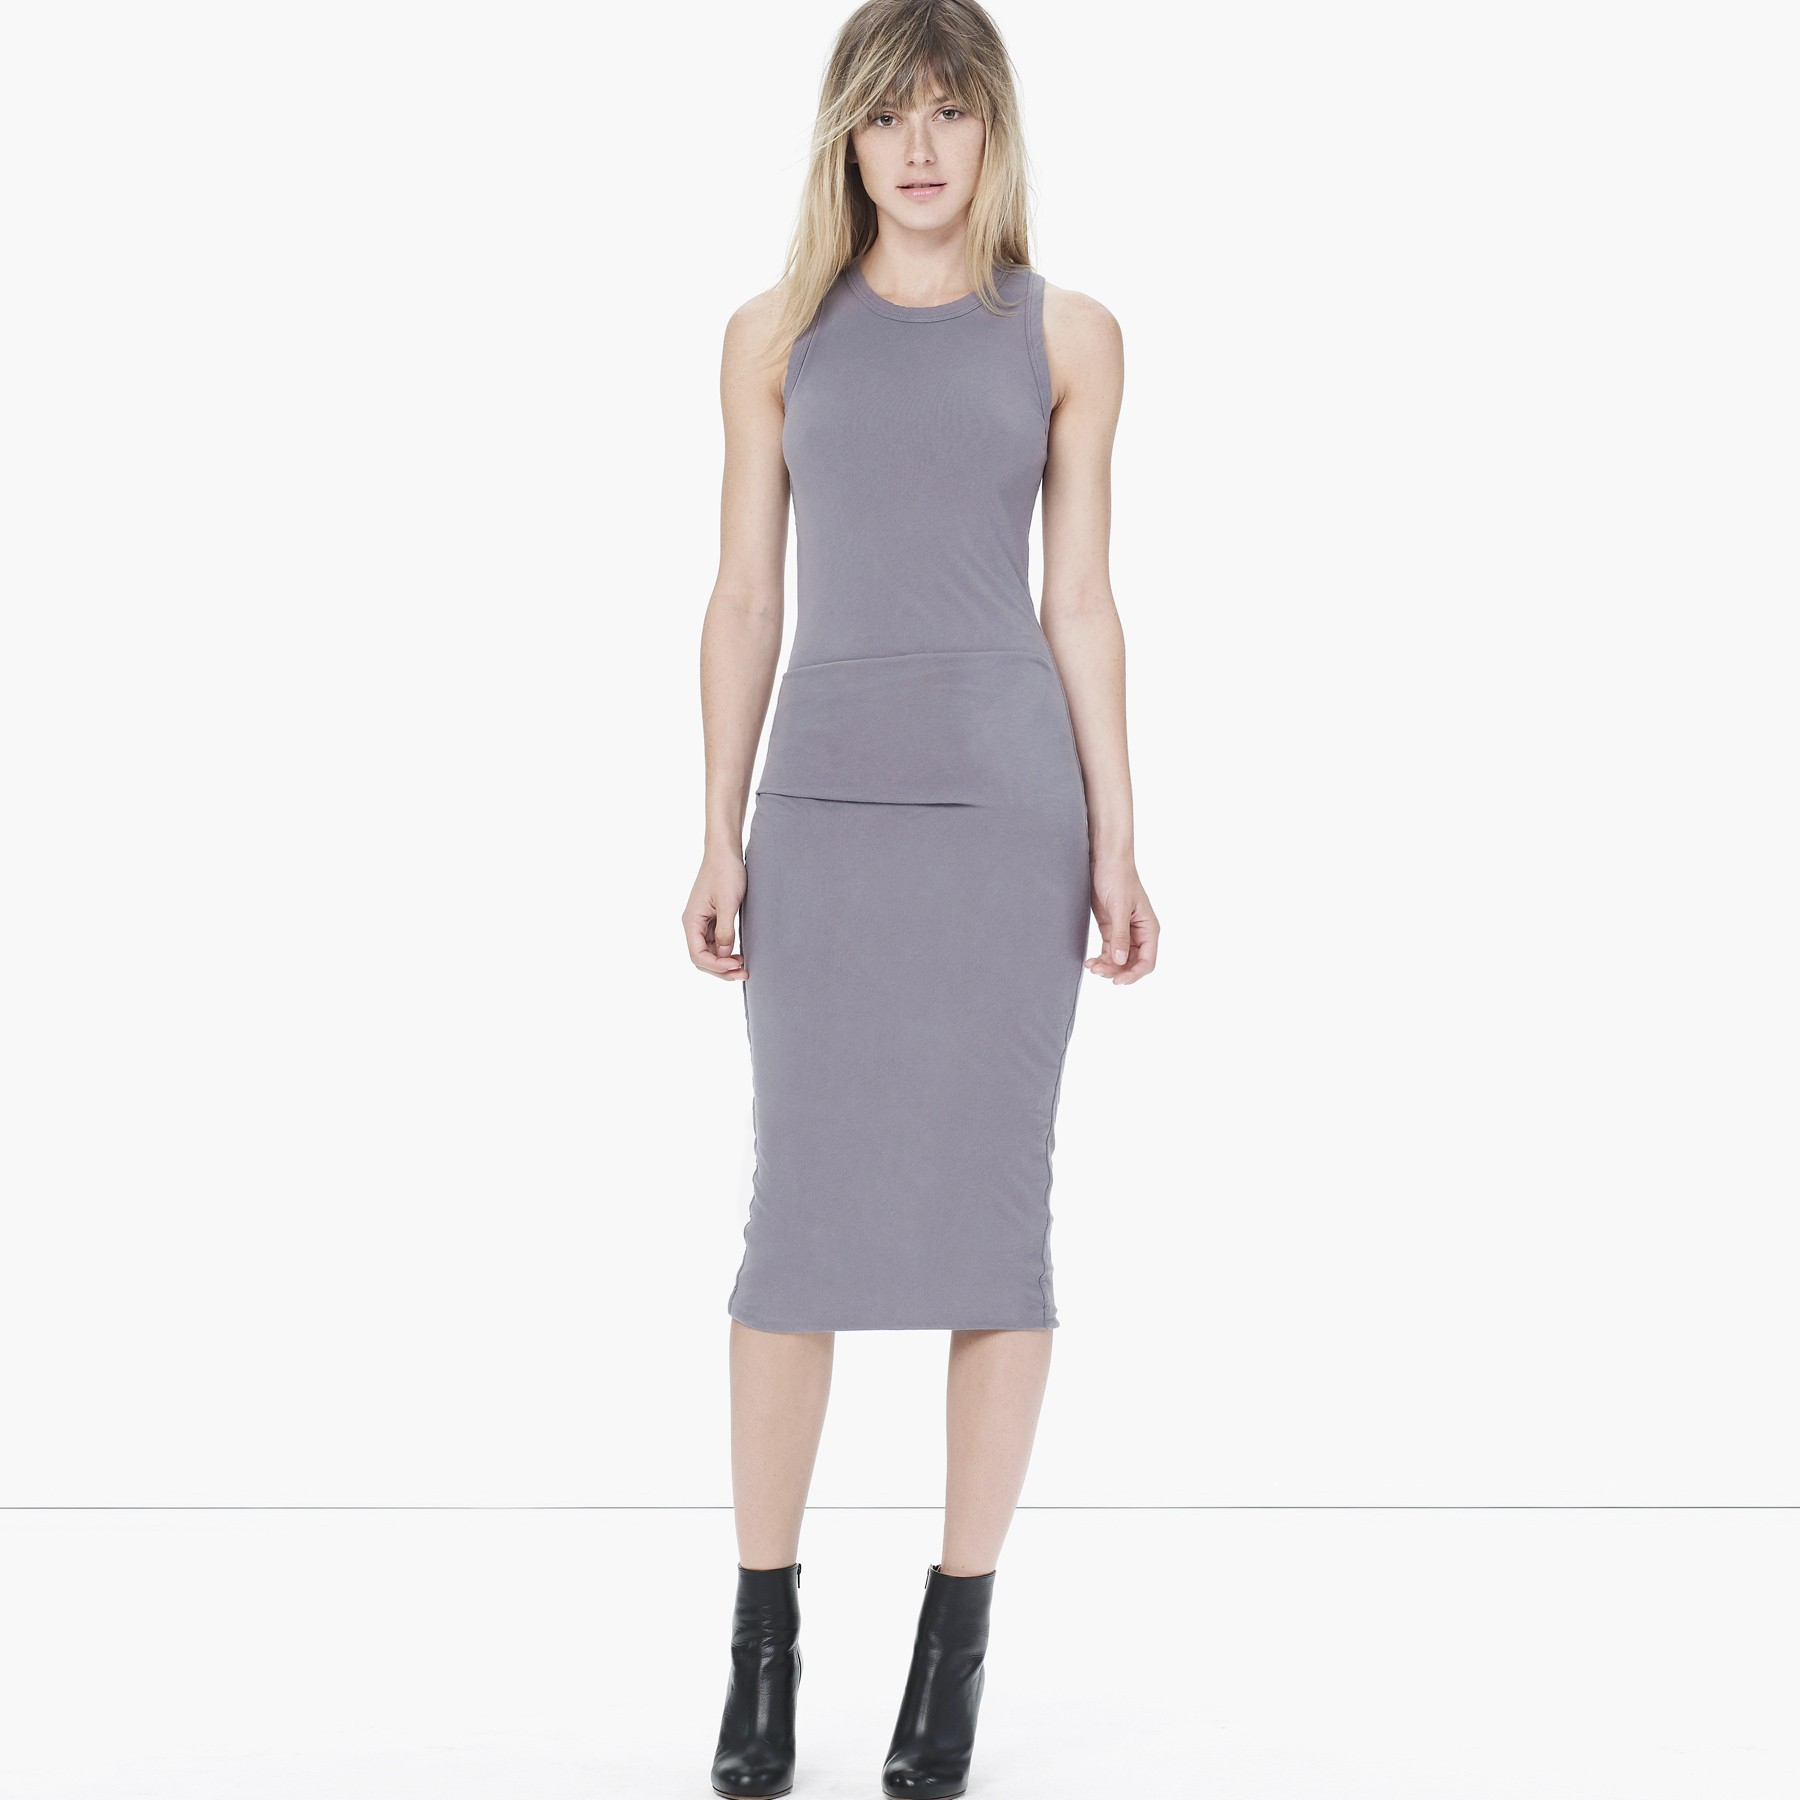 622b6f1b114c23 Lyst - James Perse Skinny Tucked Tank Dress in Gray